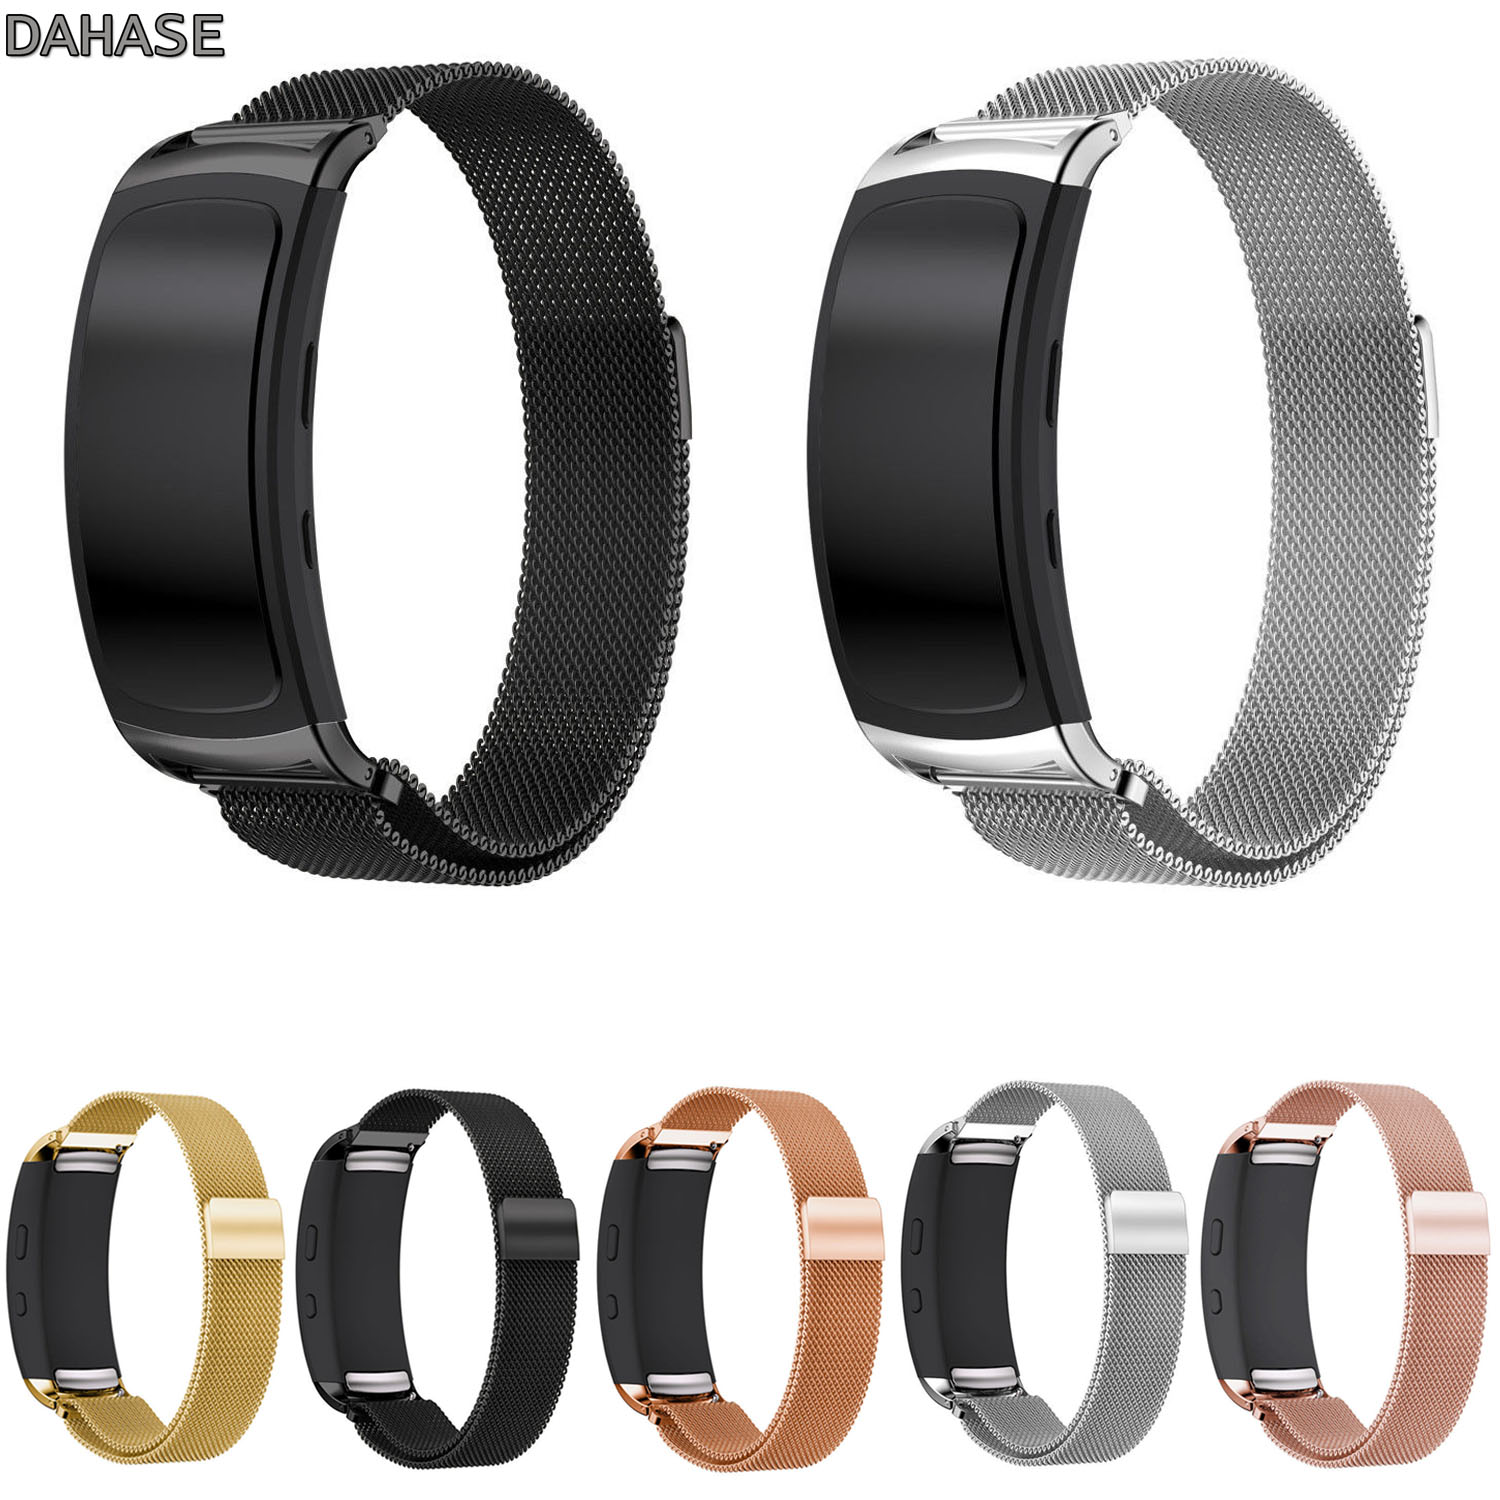 DAHASE Milanese Loop Watch Strap for Samsung Fit2 Pro Band Magnetic Clasp Stainless Steel Bracelet for Gear Fit2 SM-R360 Band 2017 new stainless steel bracelet strap watch band milanese magnetic with connector adapter for samsung gear s2 watch band